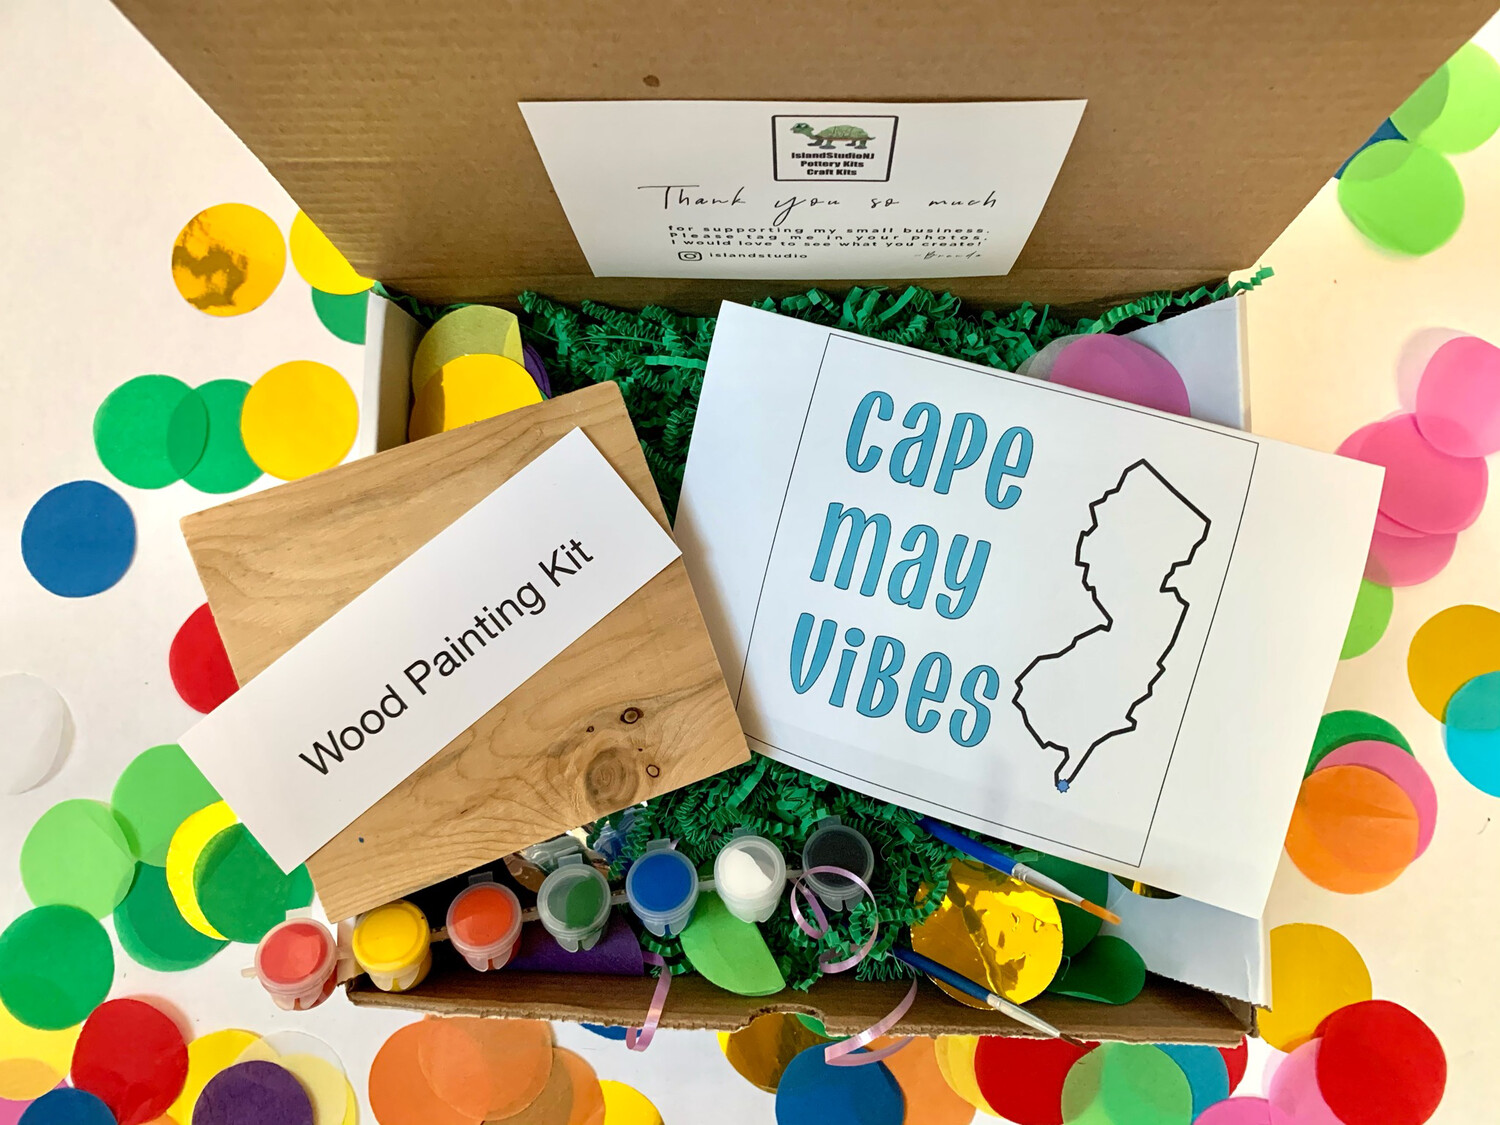 CAPE MAY VIBES Paint Your Own Wood Sign Kit